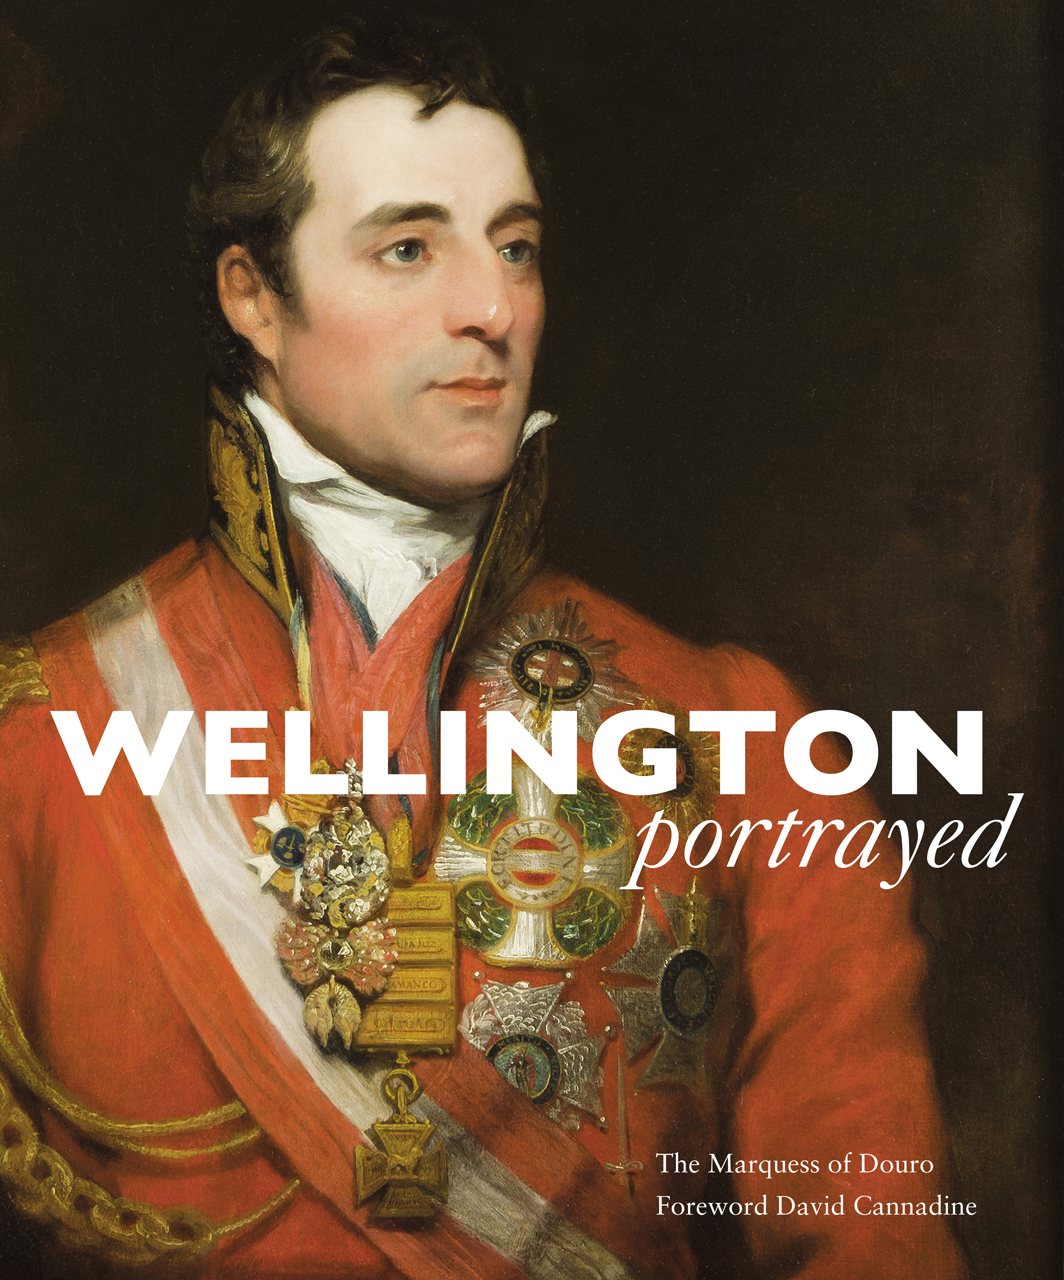 duke of wellington essay On waterloo is built around a new and complete translation of clausewitz's study of the 1815 waterloo campaign (published in berlin, 1835), which is a strategic analysis of the entire campaign (not just the battle of waterloo) it includes the duke of wellington's detailed 1842 response to it—the only essay wellington ever wrote concerning the battle.